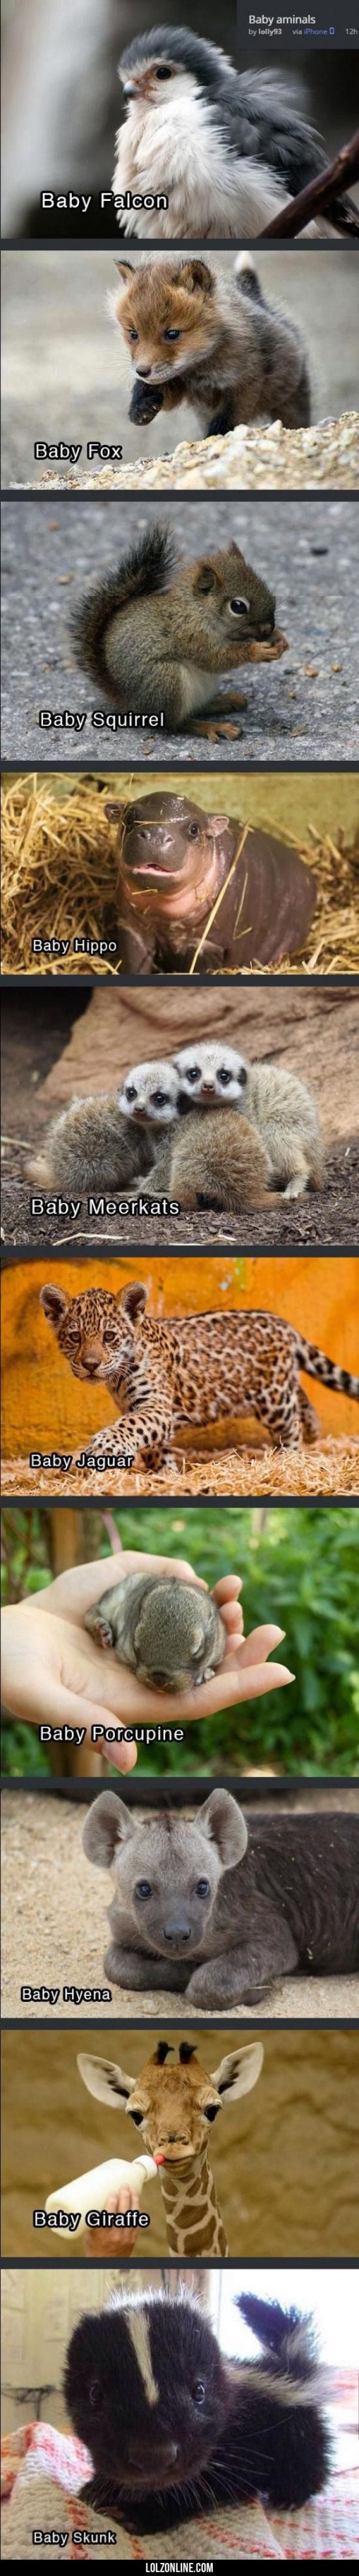 10 Baby Animals To Cheer You Up